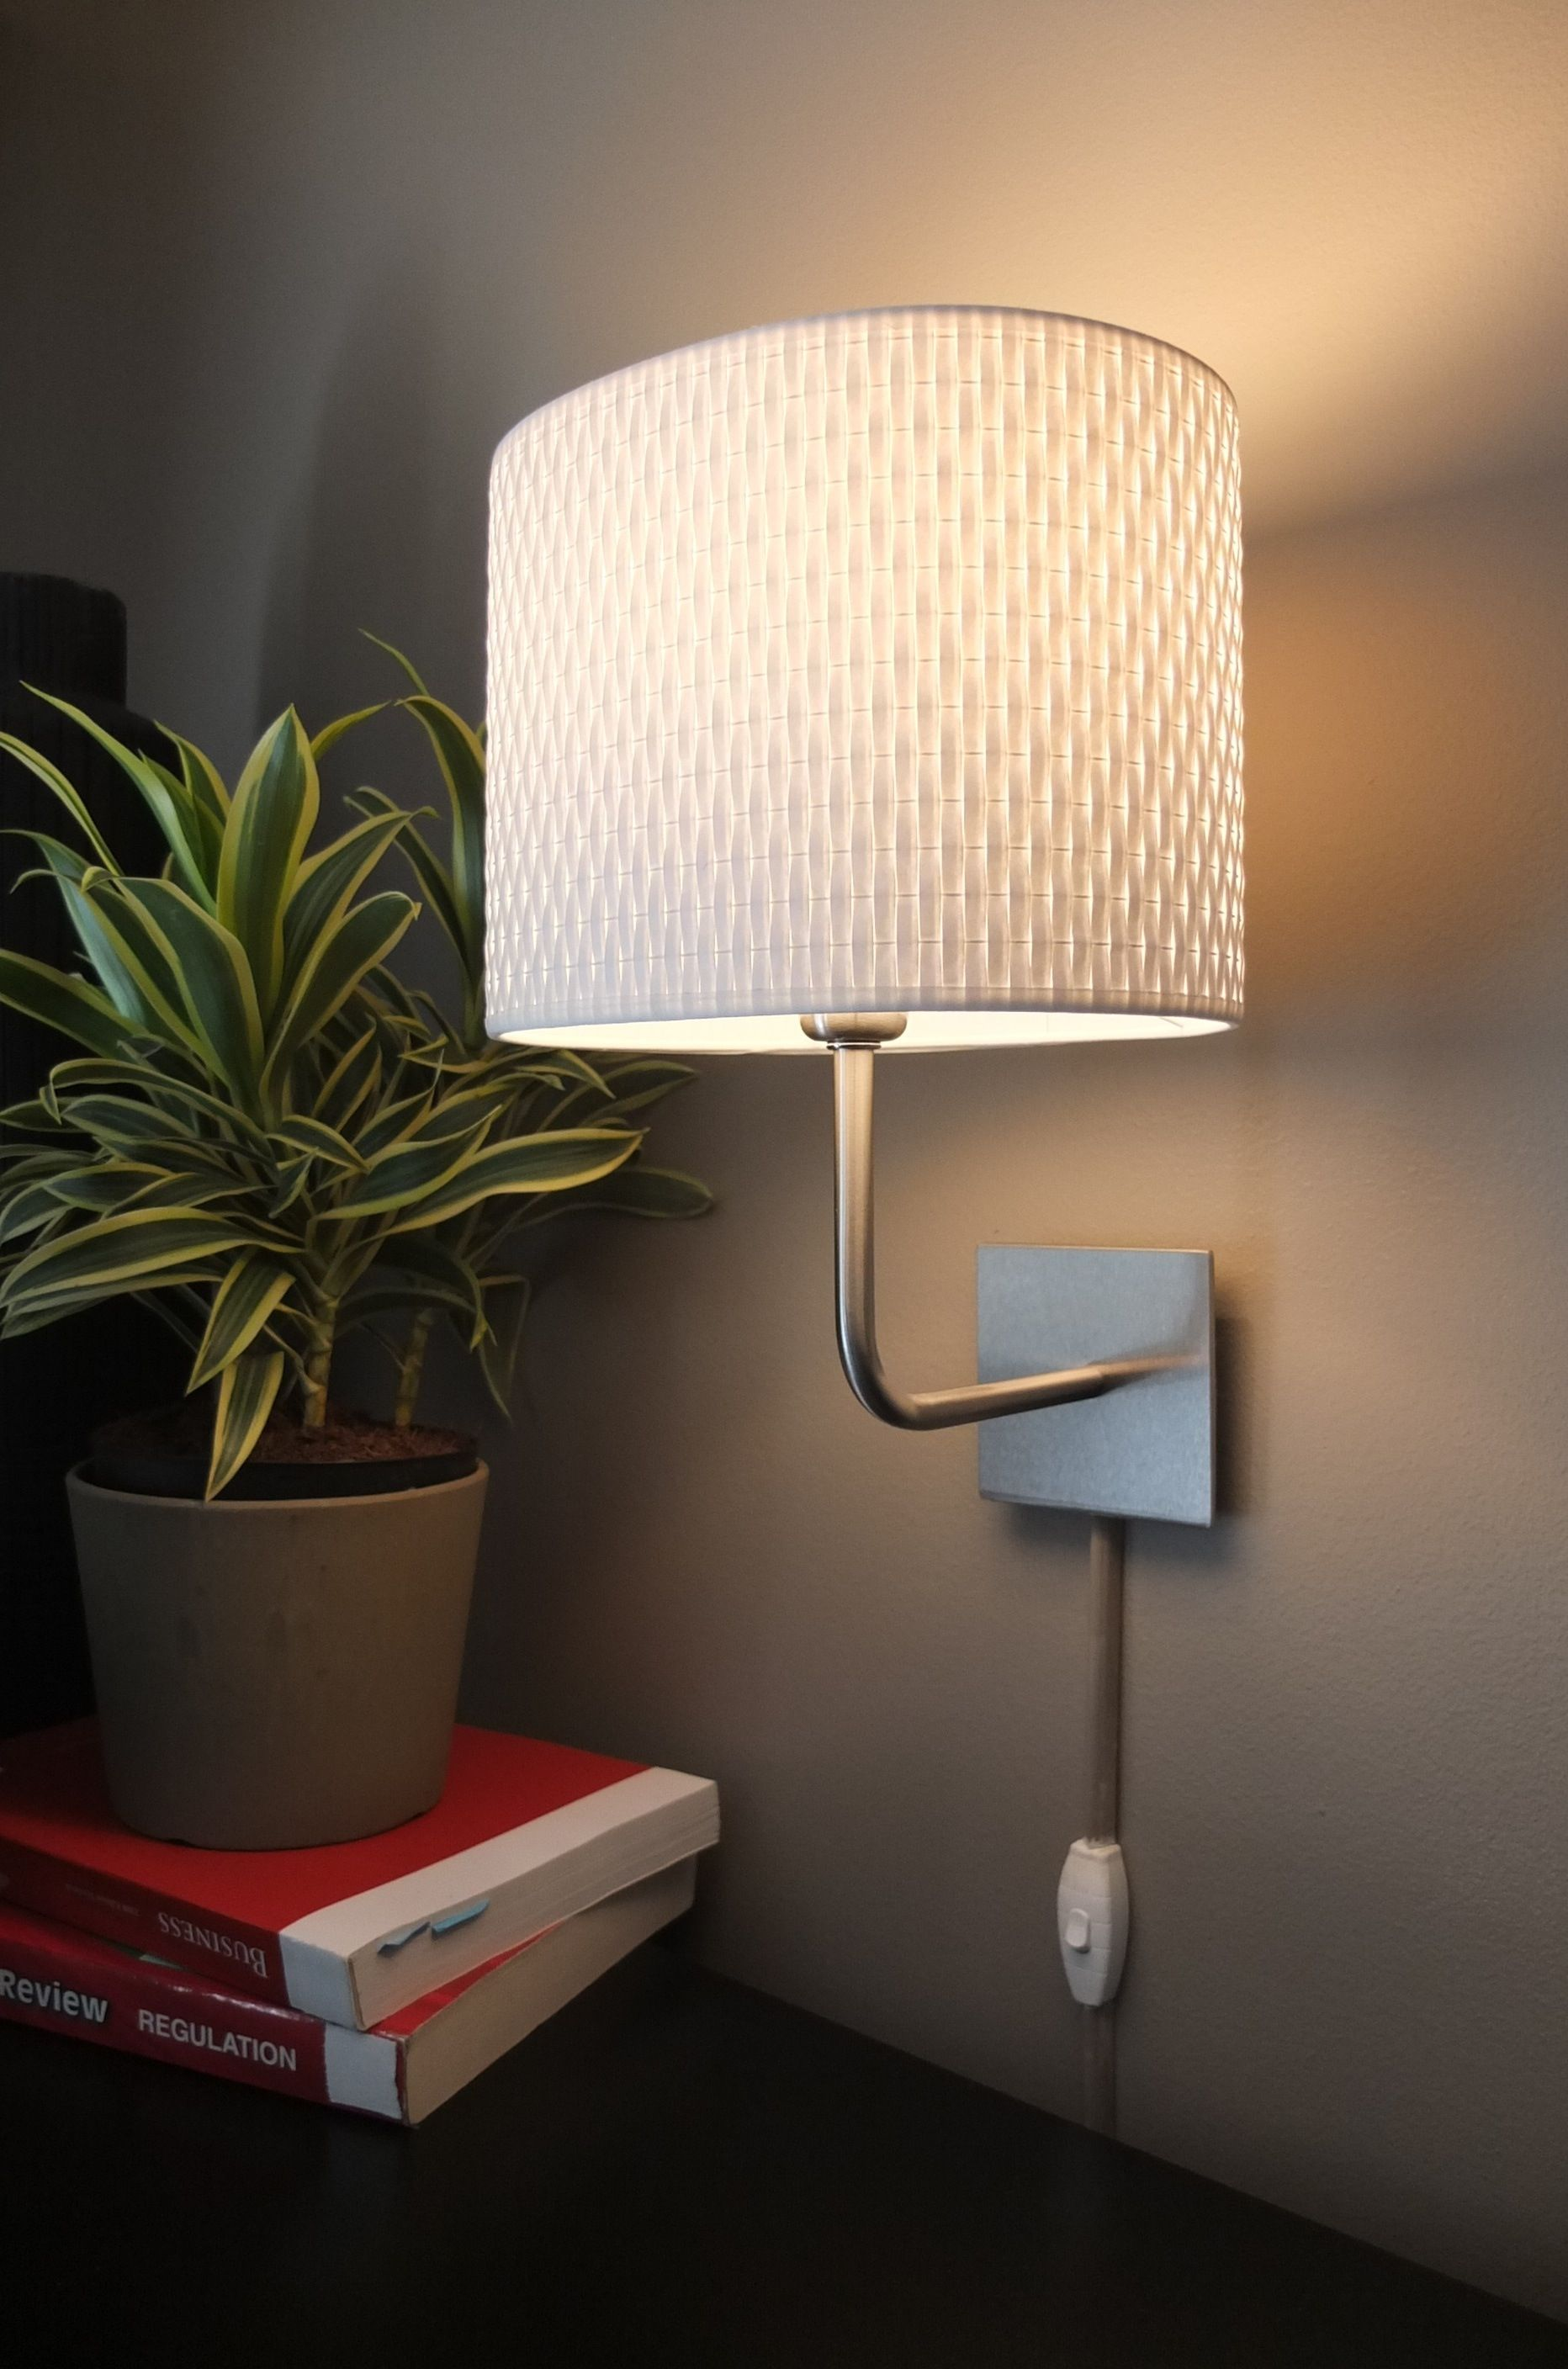 Wall Mounted Lights For Bedroom Wallmounted Ikea Lamps Are An Easy Way To Add Light In A Room